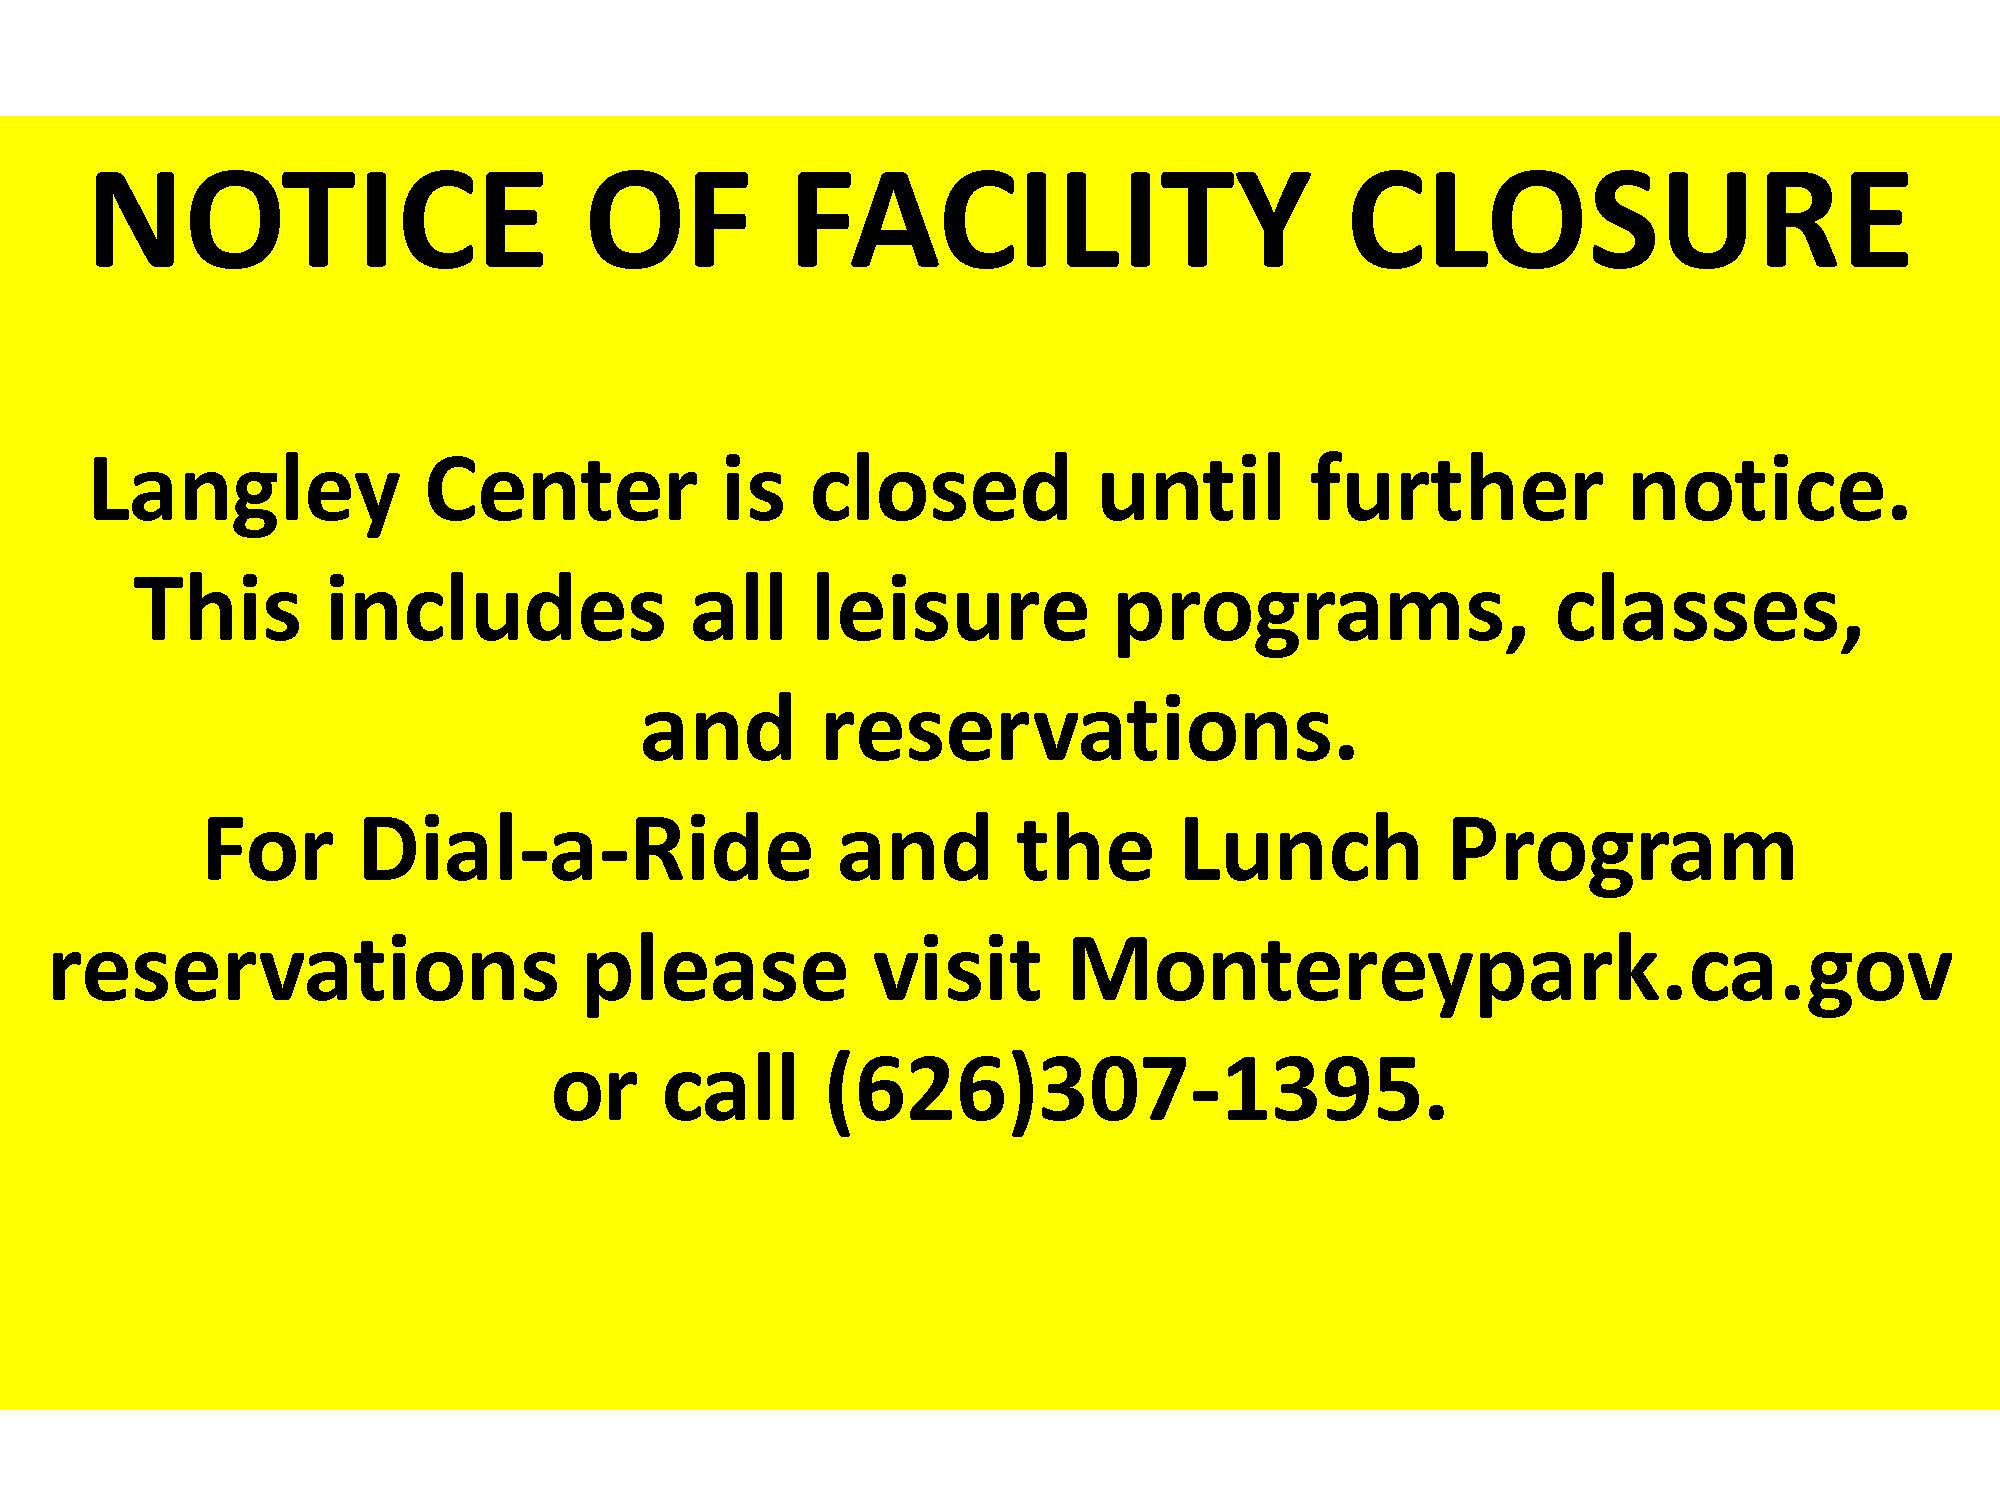 03-13-20 Langley Center Notice of Facility Closure COVID-19_Page_1